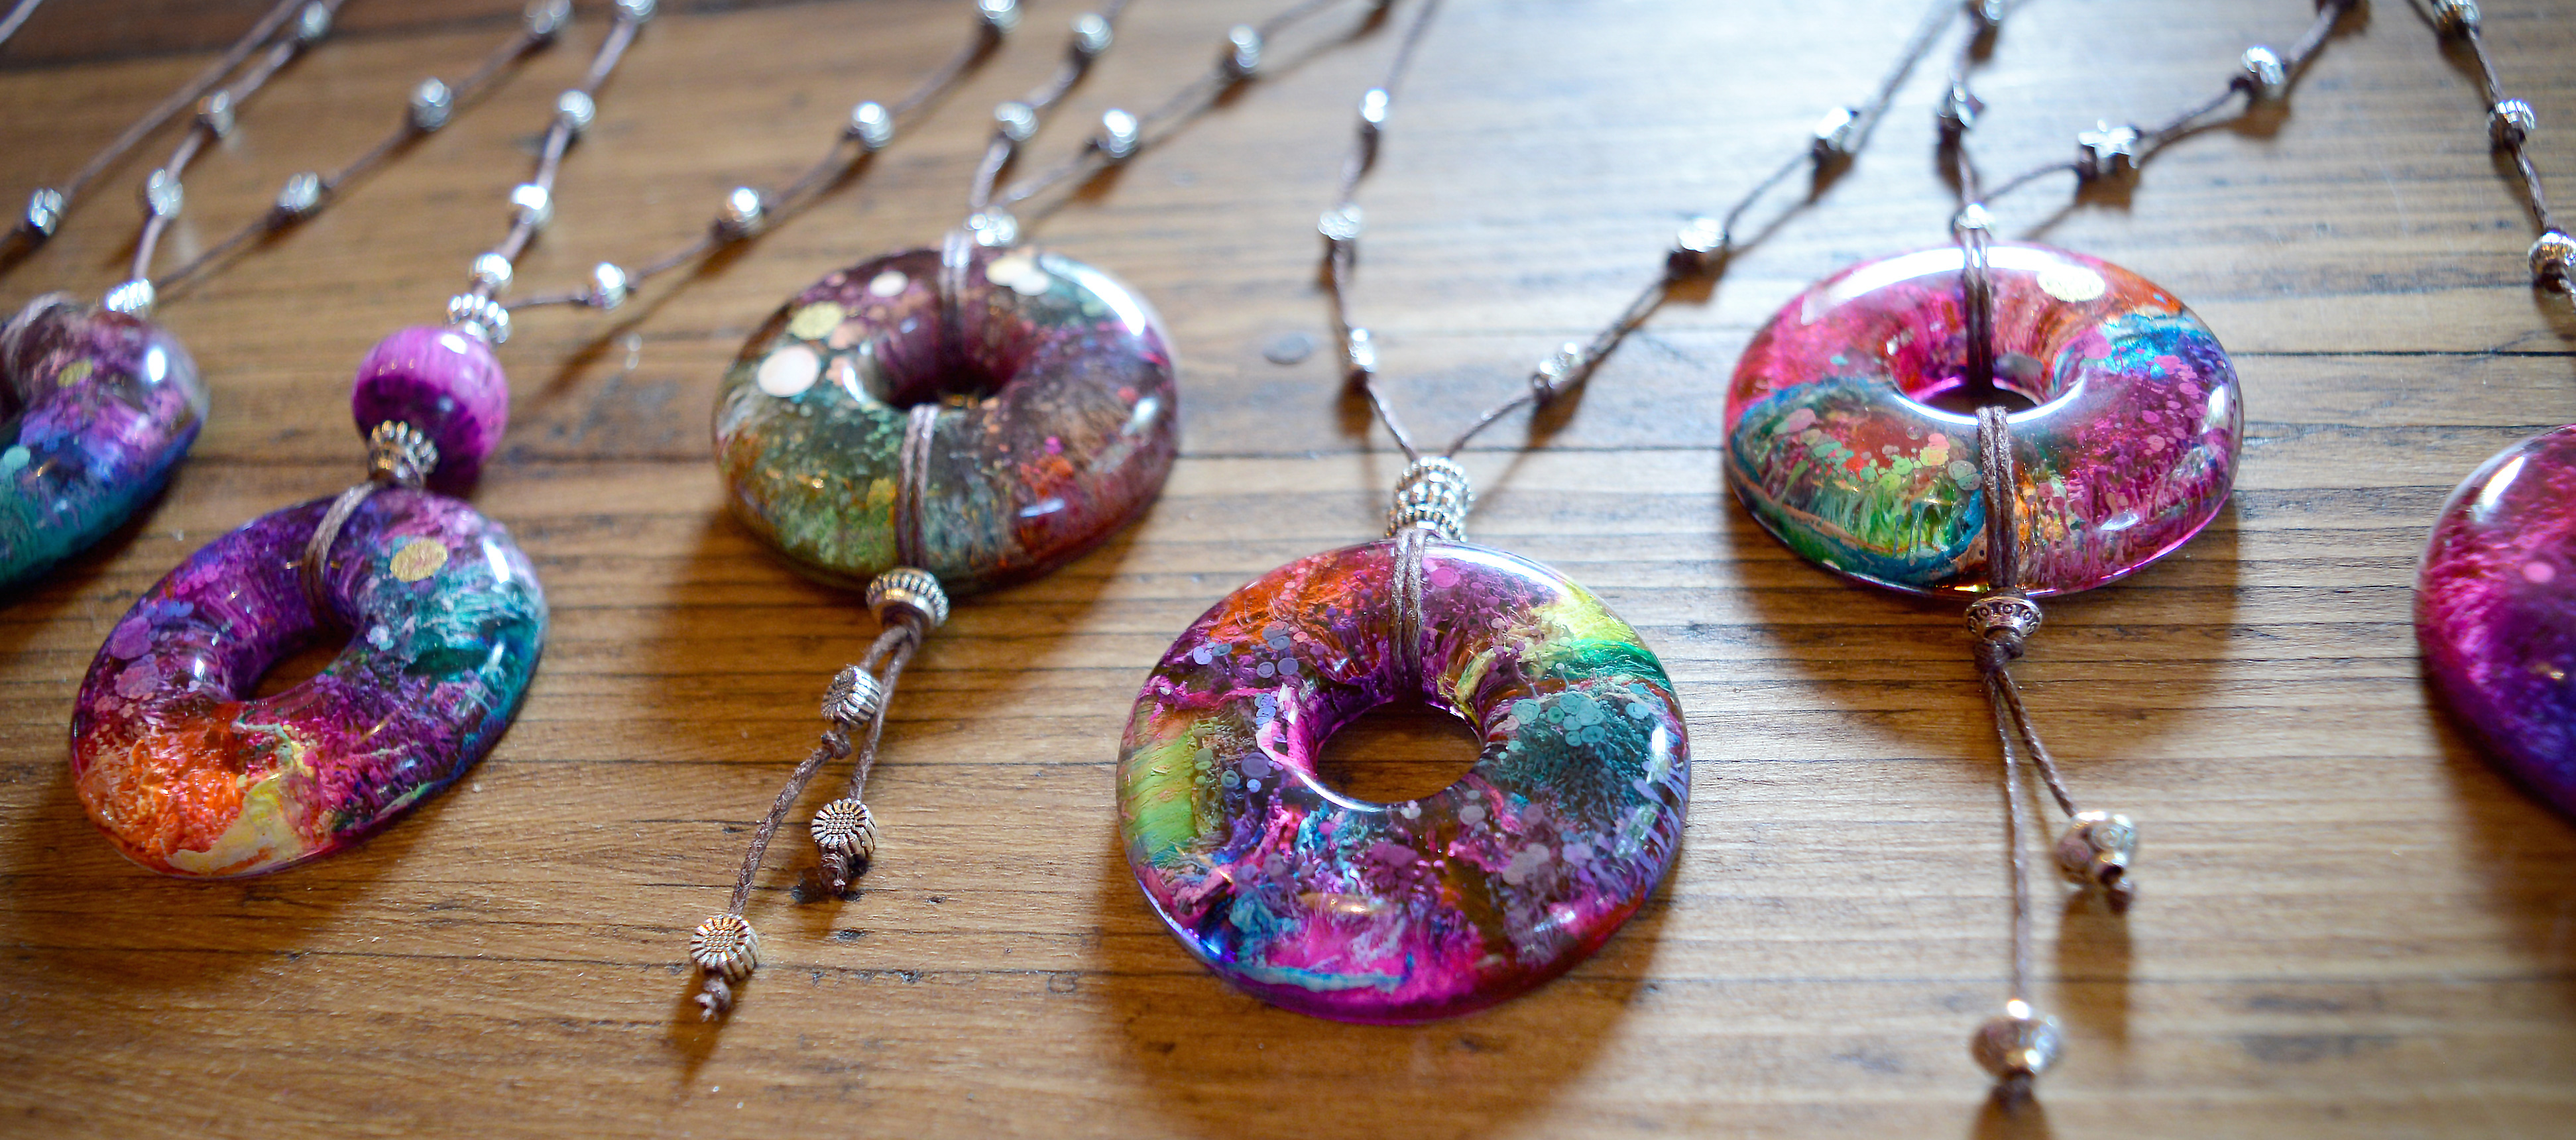 Handmade Resin Pendant Necklaces by Lucy Rawle